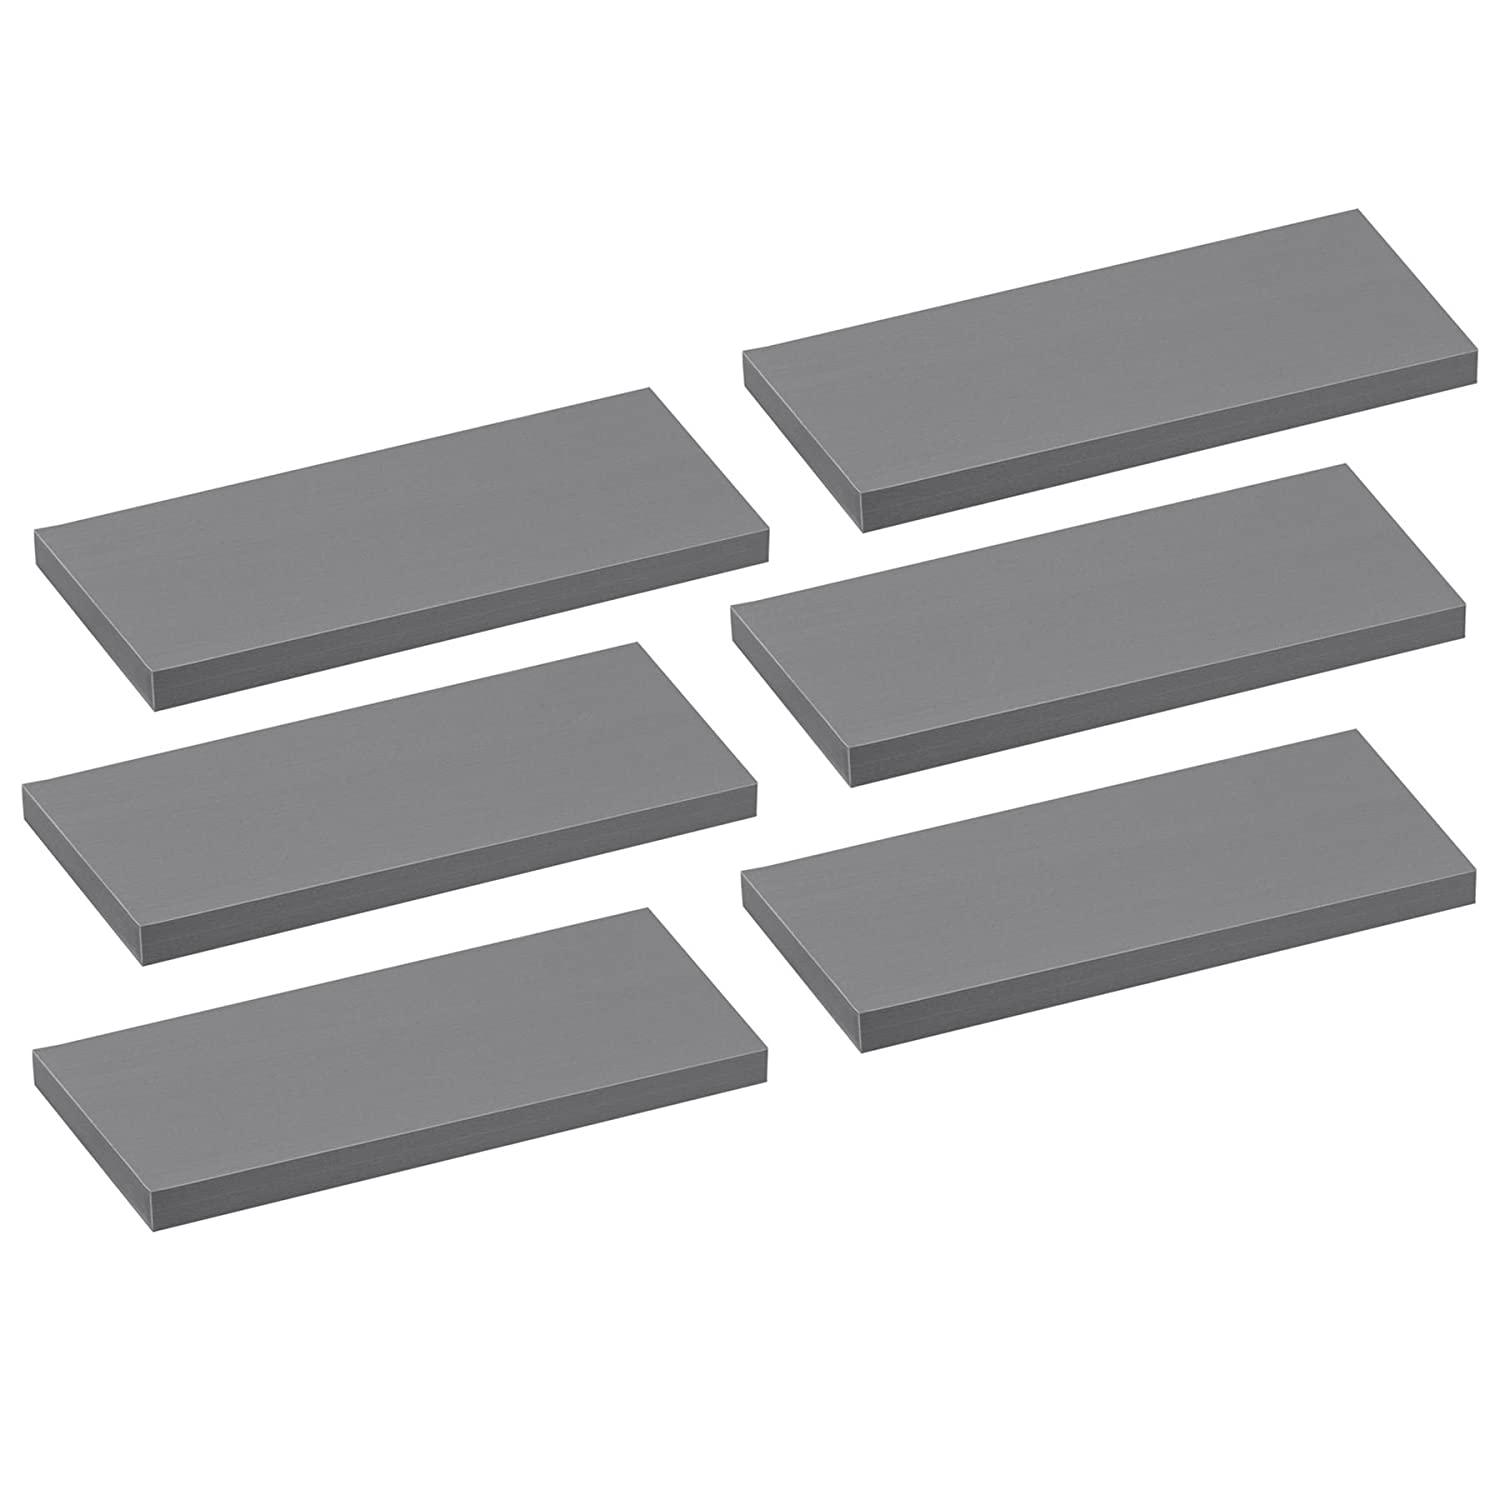 Harbour Housewares Floating Wooden Wall Shelf Shelves - 80cm - Grey - Pack of 6